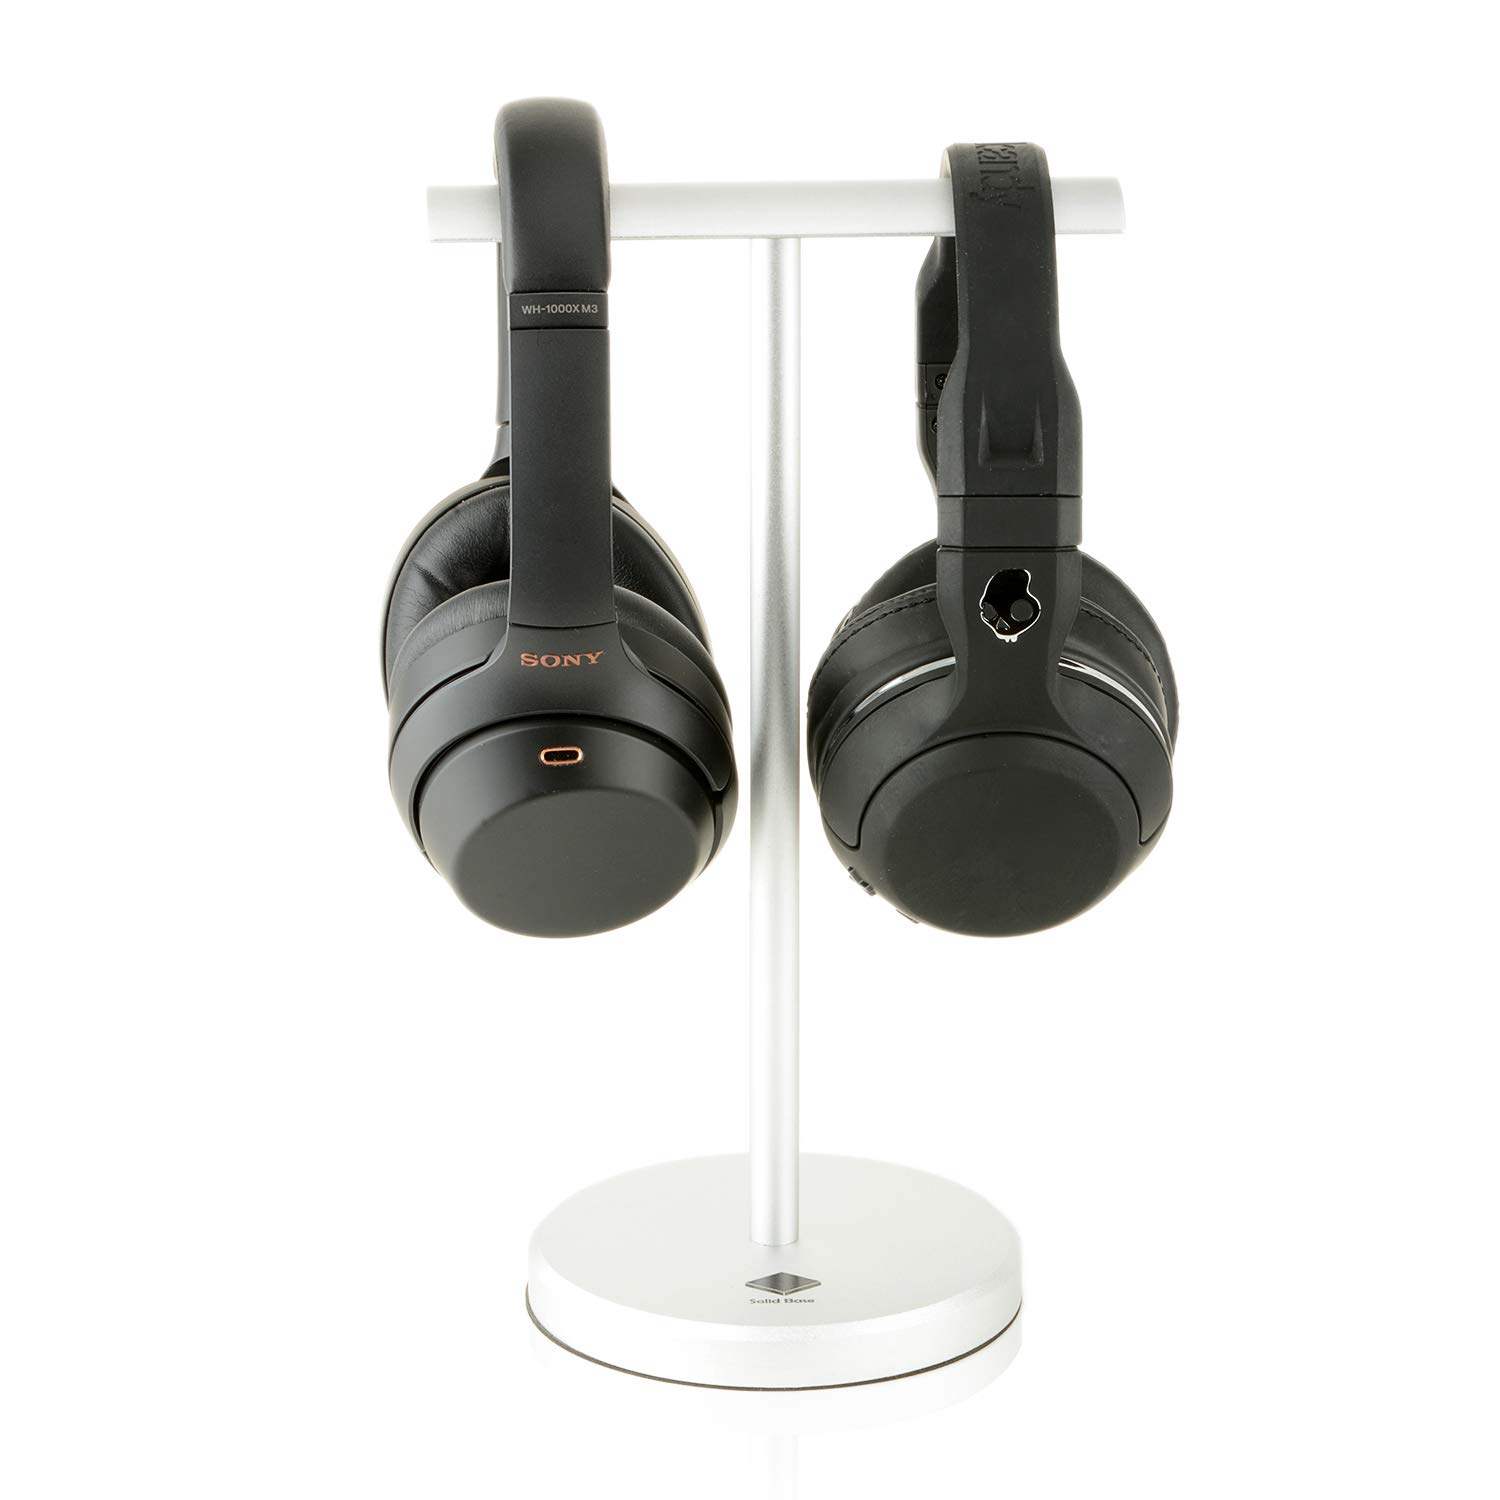 Solid Base Dual Sides Aluminum Headphones Stand Hanger for Monster DNA Beats Bose Skullcandy Sony Sennheiser Shure AKG Headphones with Handband (Chrome) -1 Year Warranty Included-